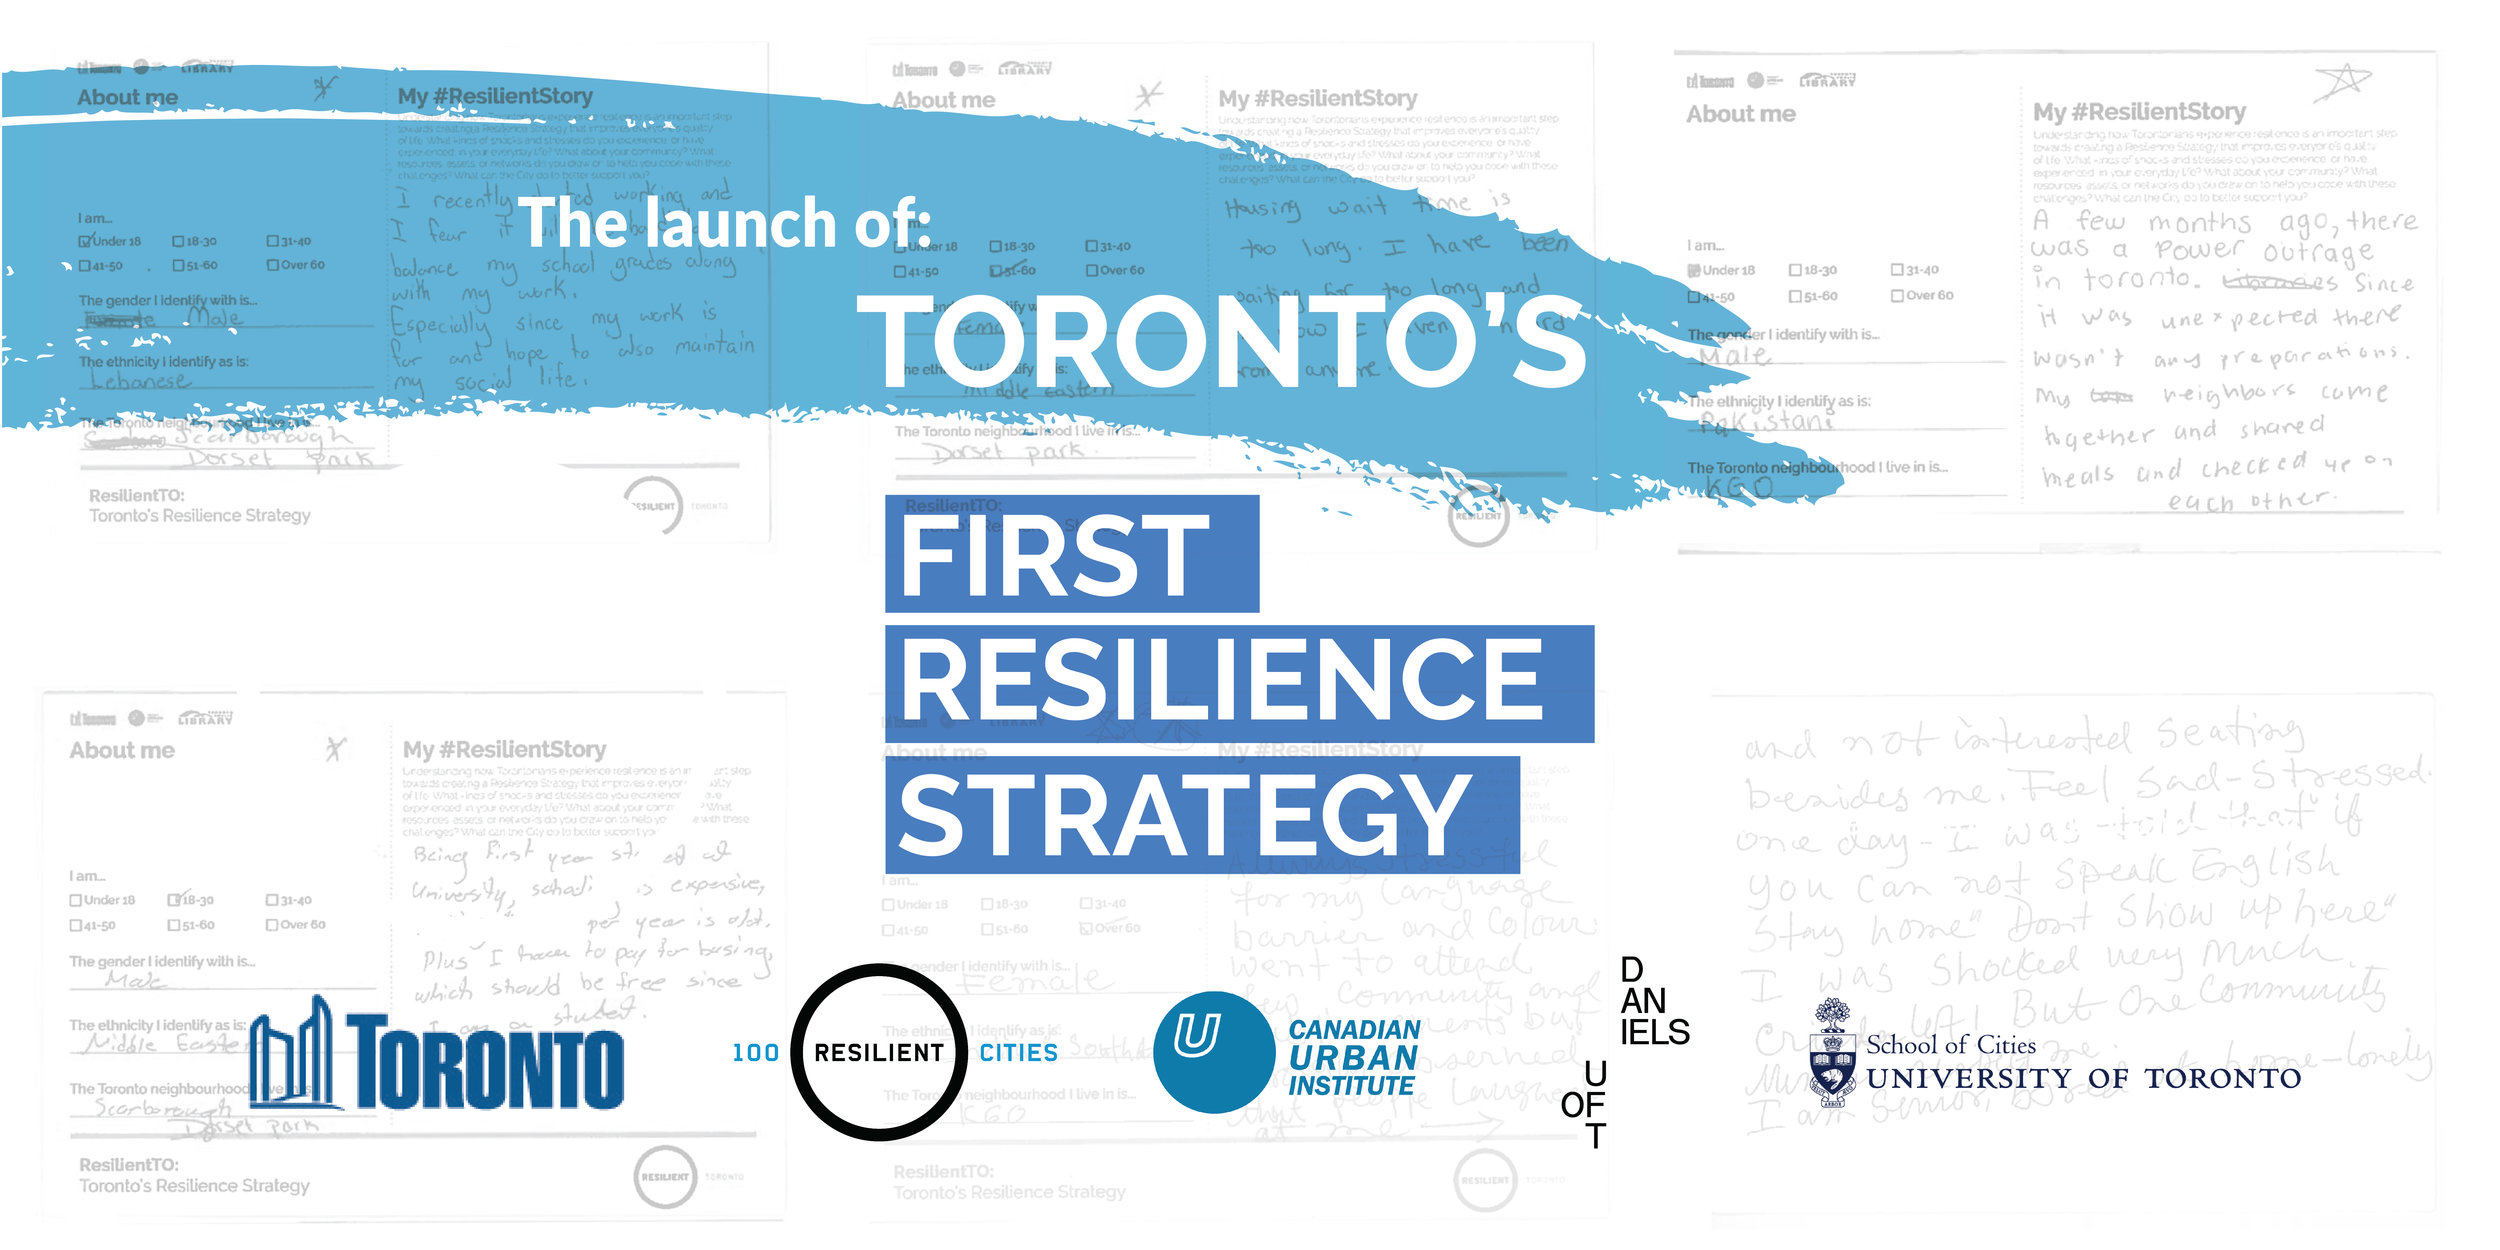 Launch of Toronto's first Resilience Strategy   June 2018  The City of Toronto introduced its first Resilience Strategy - an action plan meant to help the city adapt and thrive in the face of any challenge. Over two hundred city-builders gathered at the iconic Daniels Building to celebrate the launch of the Strategy and share their thoughts on the implementation process during the breakout discussions that followed. CUI has been involved throughout this Strategy development process and has facilitated a series of three events designed to engage city-builders and citizens in the development of this robust Resilience Strategy.  Read the Resilience Strategy, information about the process, and supplementary materials like the Indigenous Climate Action Summary Report at   toronto.ca/resilience.      View details for Climate Resilience Breakout Session      View details for Neighborhood Resilience Breakout Session      Read the Outcomes Report